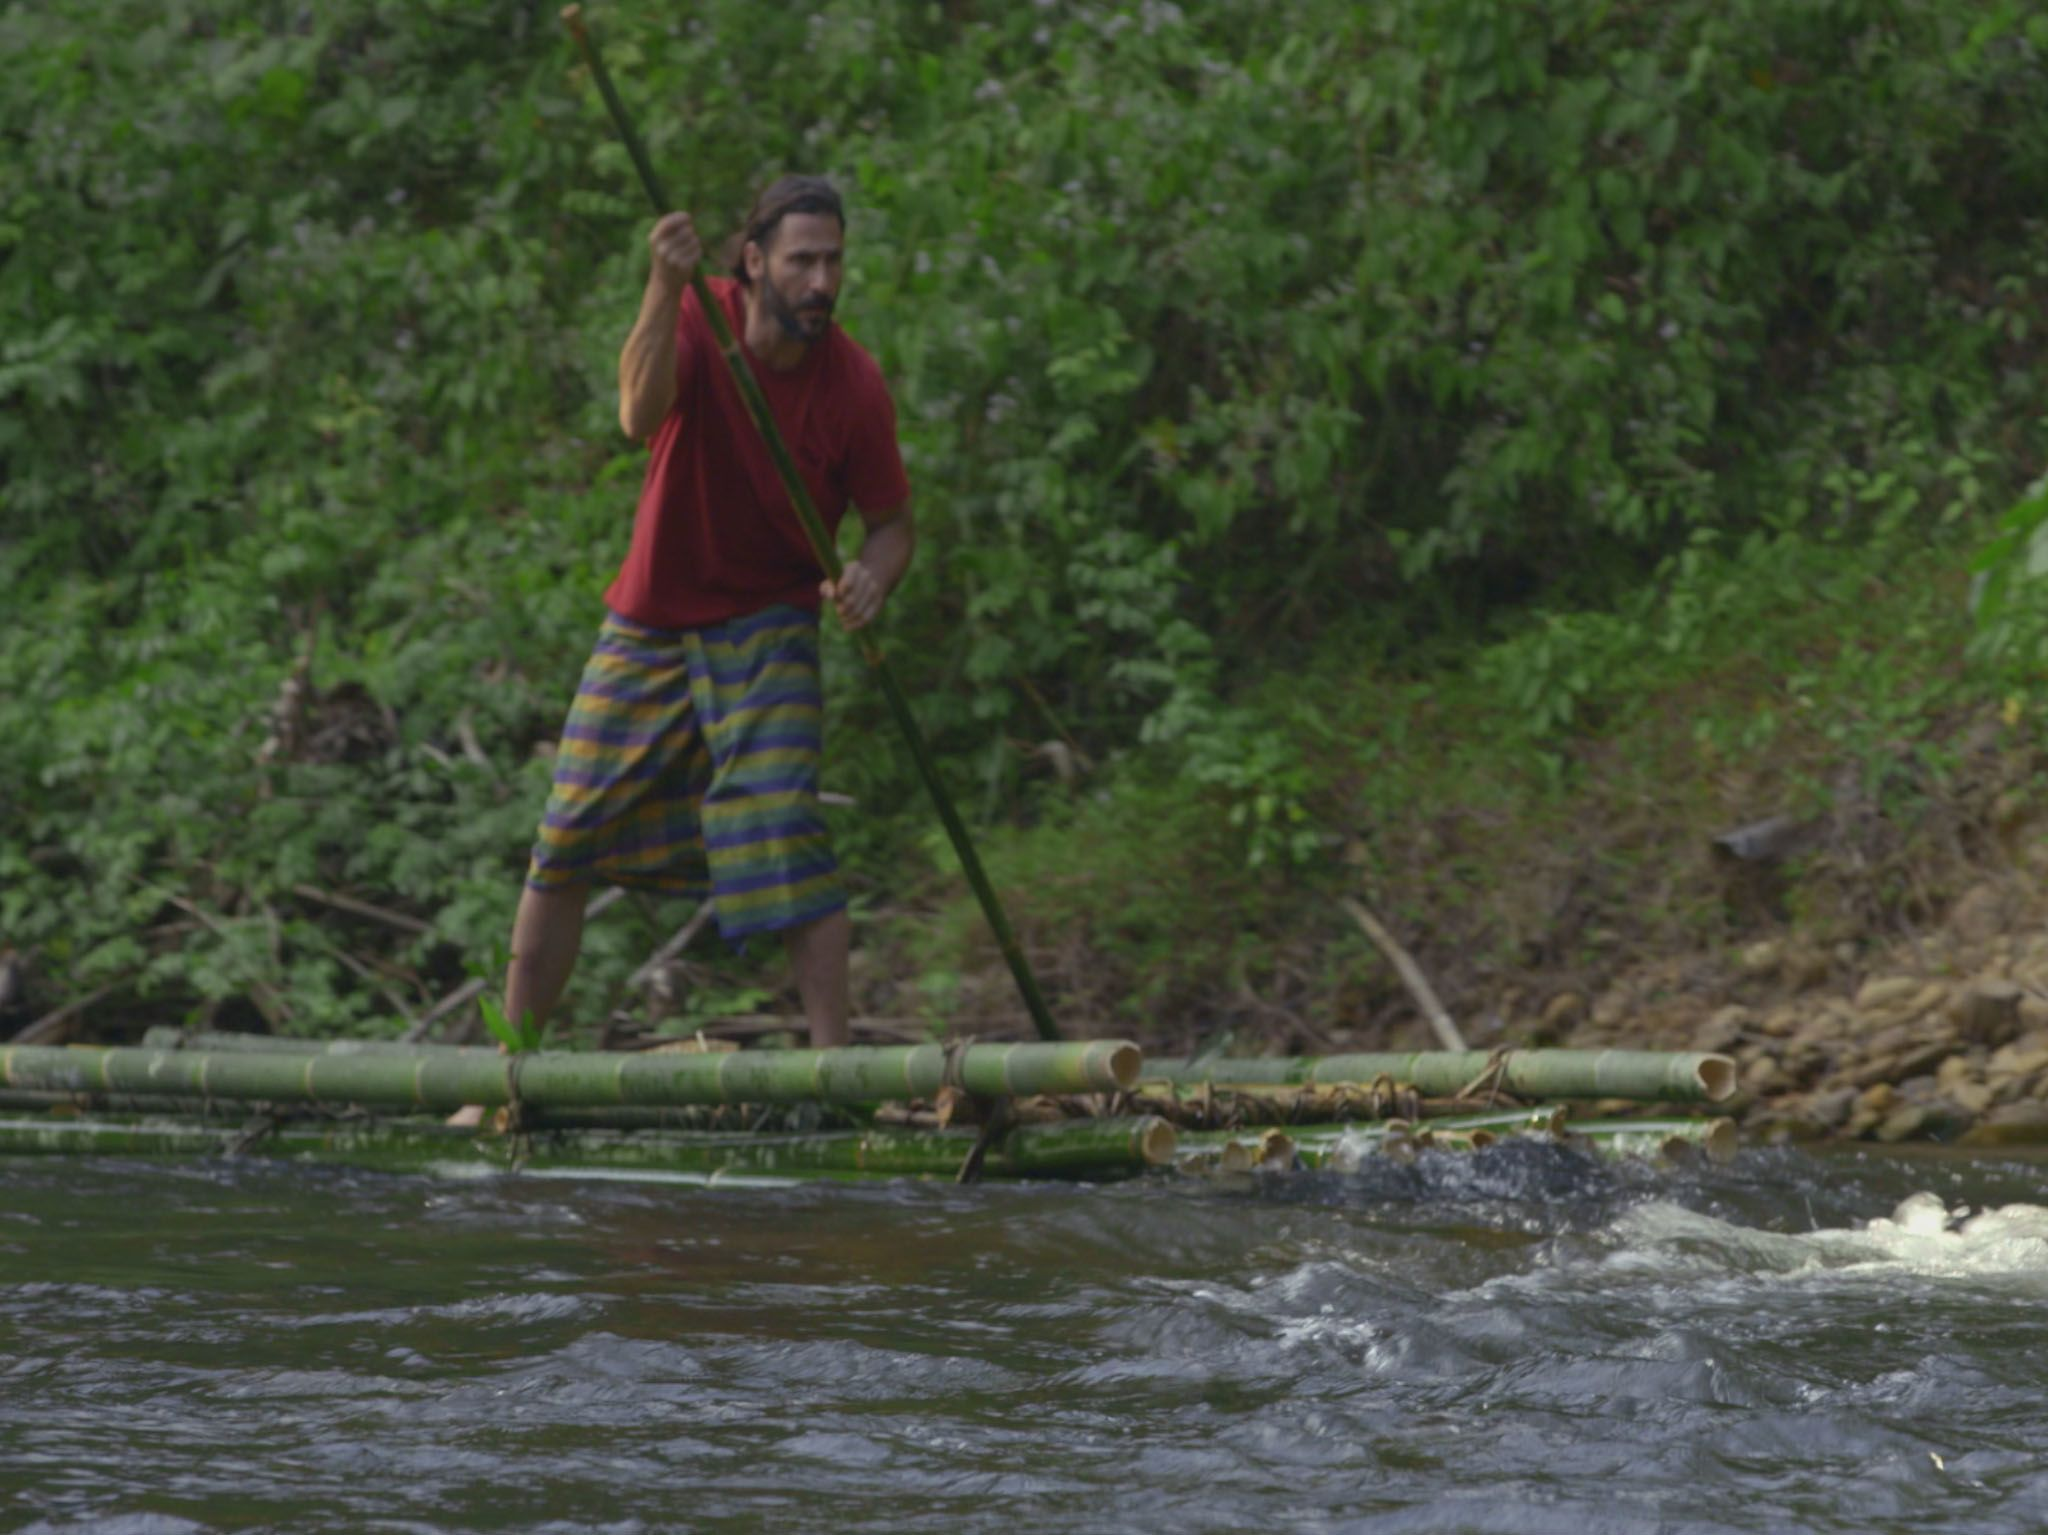 Hazen on a raft moving through river rapids. This image is from Primal Survivor. [Photo of the day - April 2021]